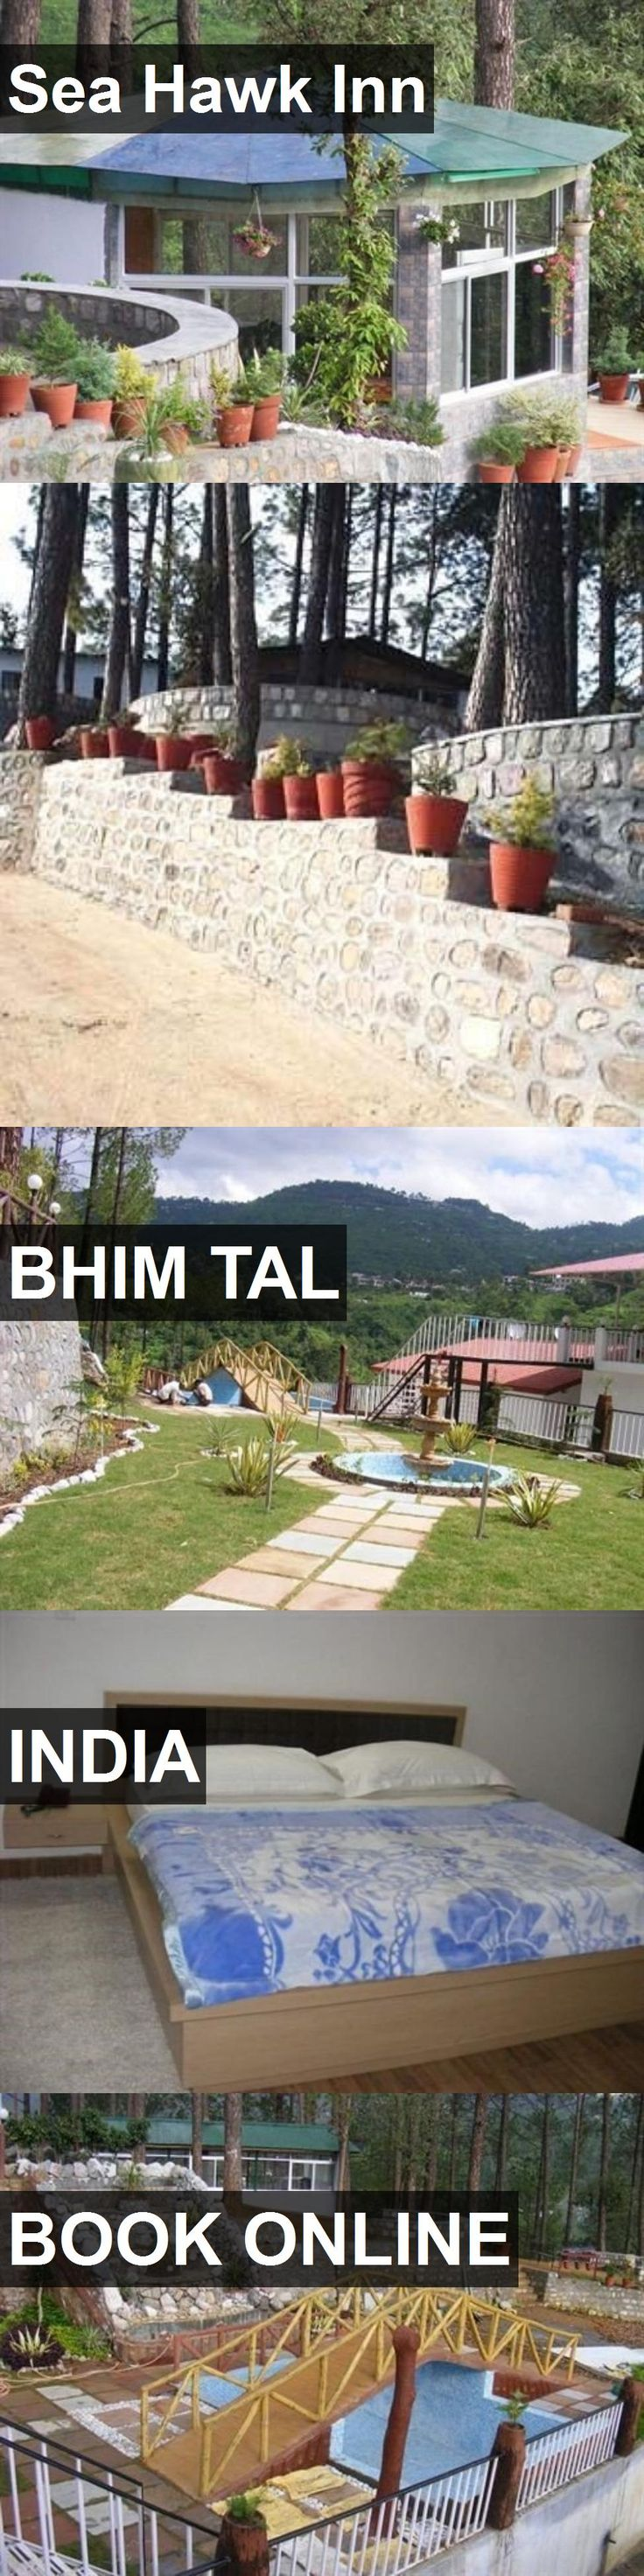 Hotel Sea Hawk Inn in Bhim Tal, India. For more information, photos, reviews and best prices please follow the link. #India #BhimTal #travel #vacation #hotel